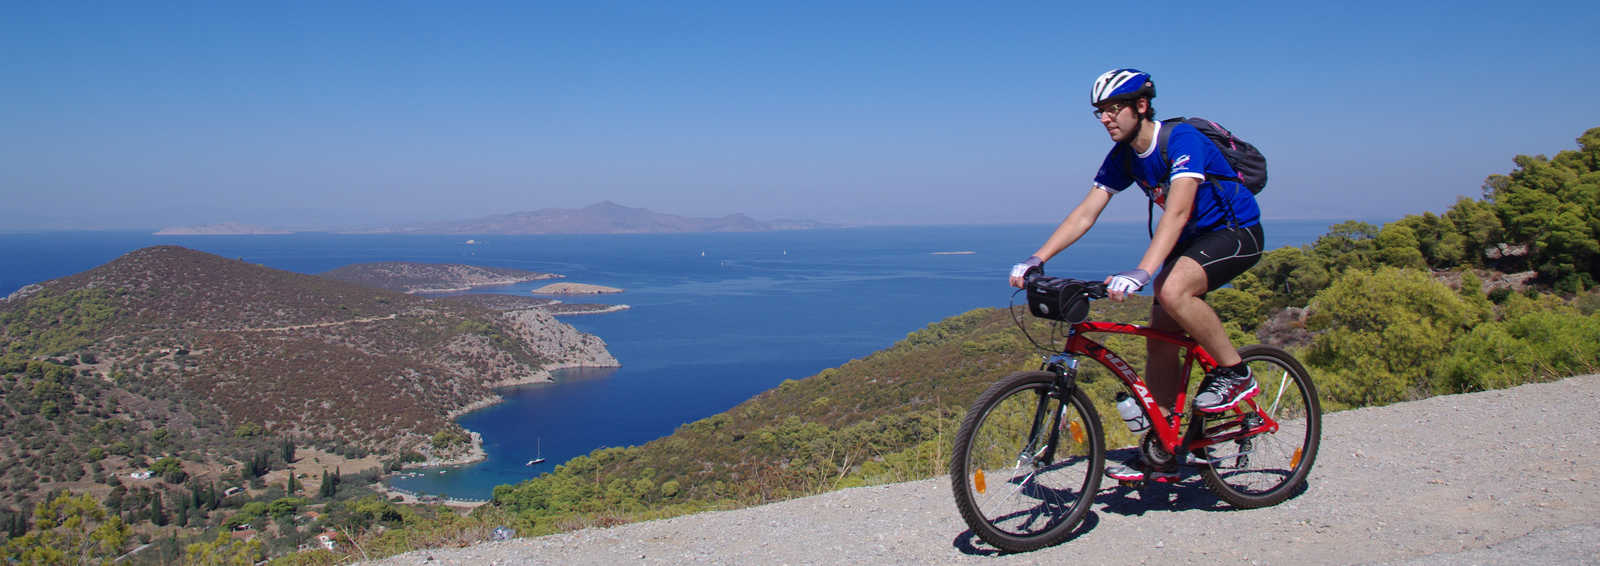 Cyclist on coastal road, Greece